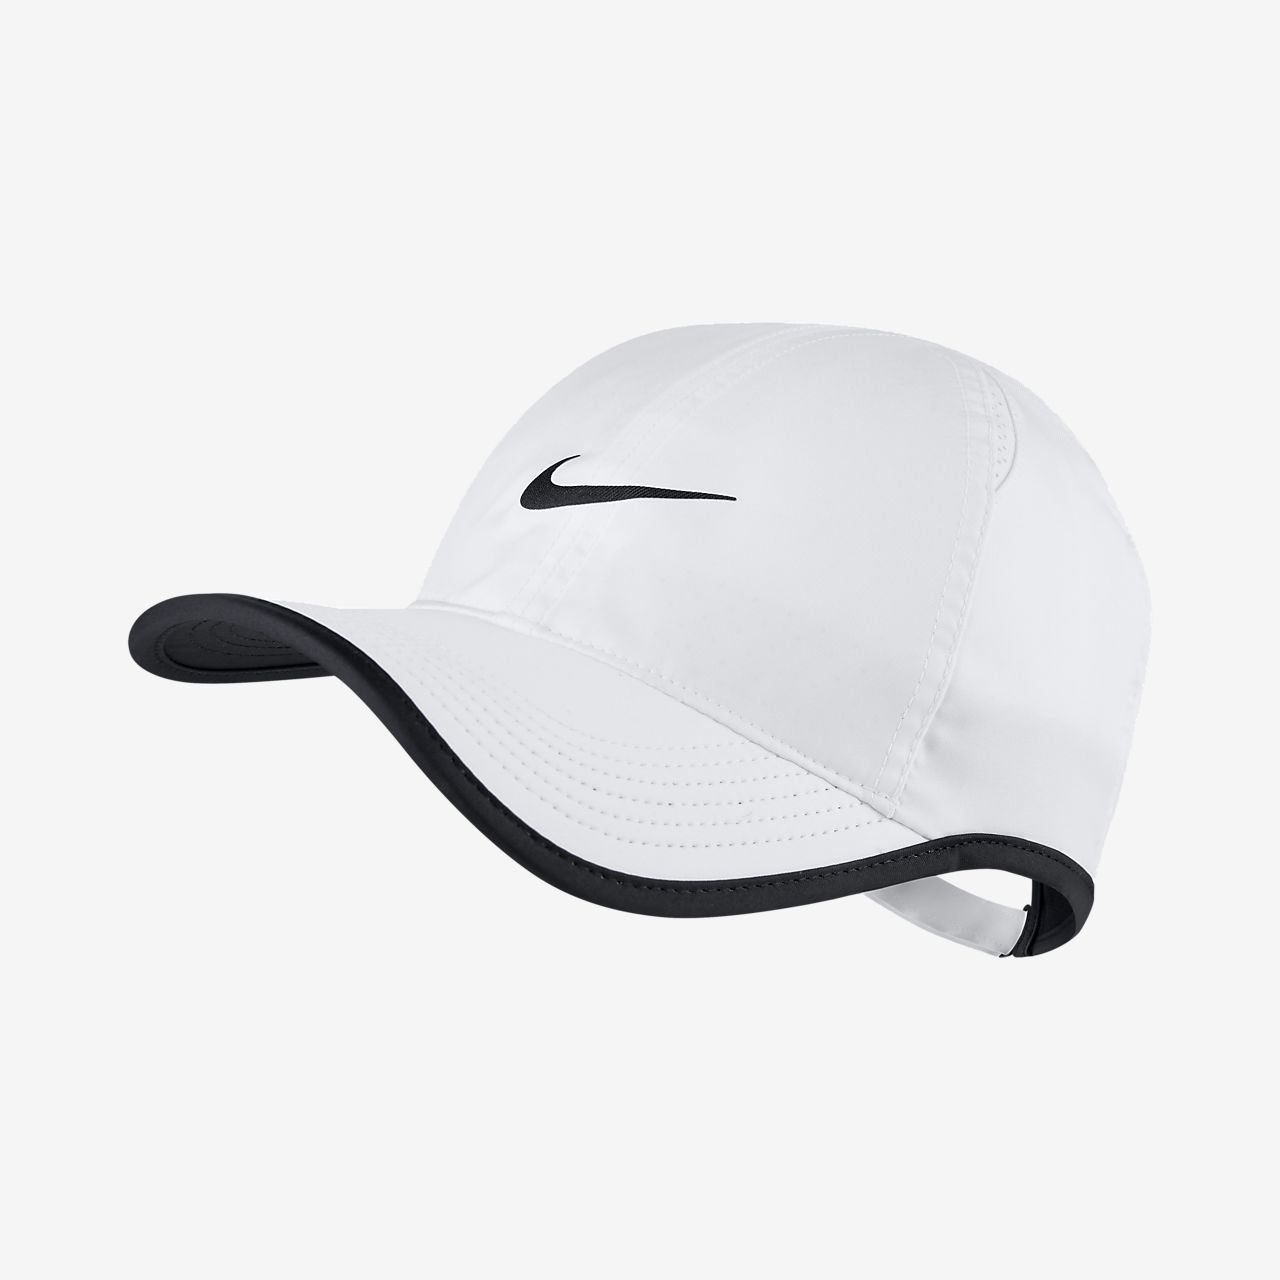 NikeCourt Featherlight Adjustable Tennis Hat. Nike.com 1d8bba26e891